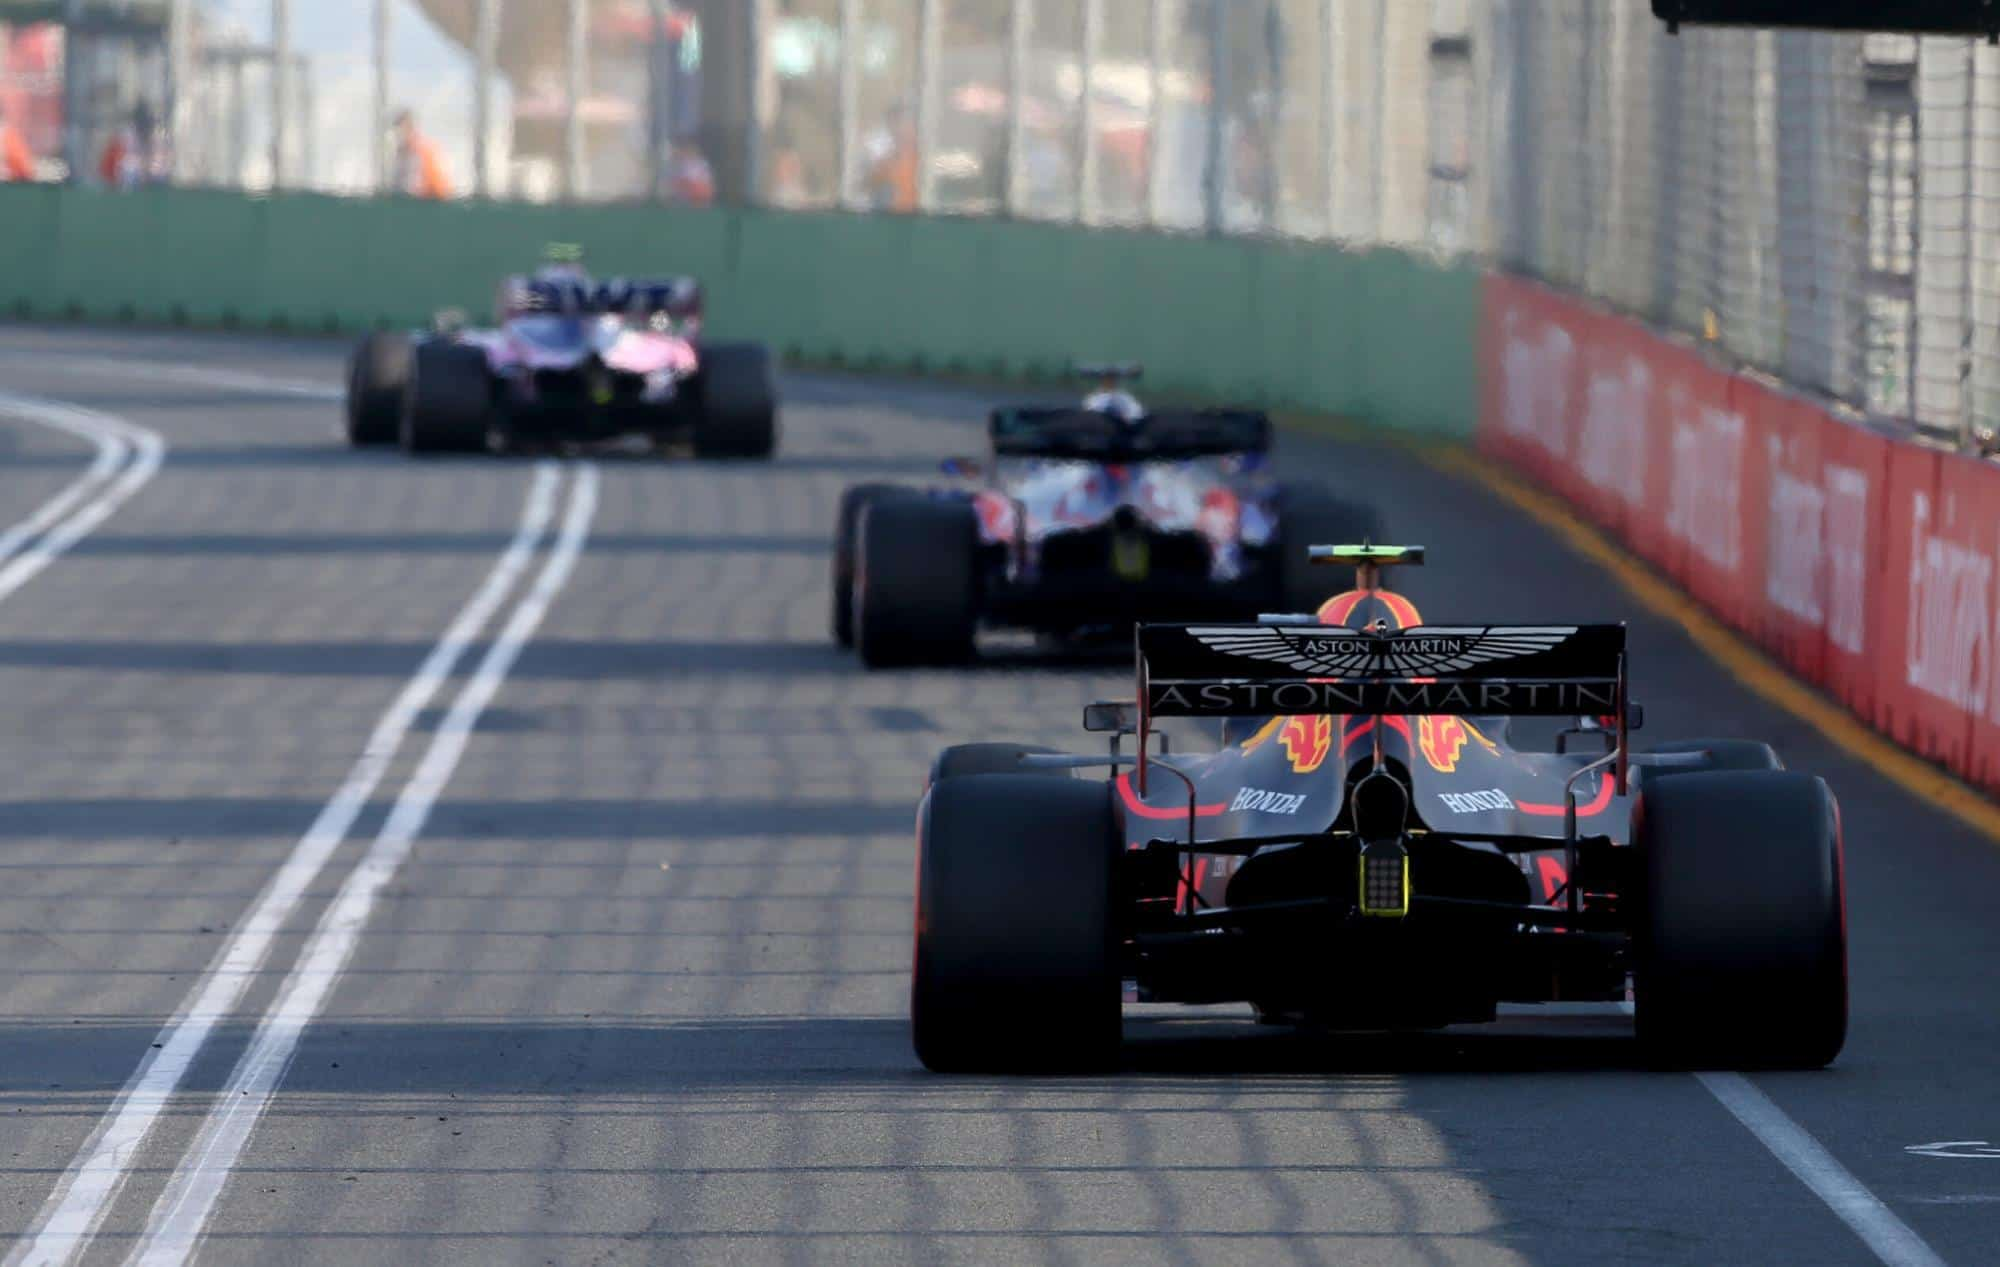 2019 F1 Honda engine 'best part' of Red Bull package